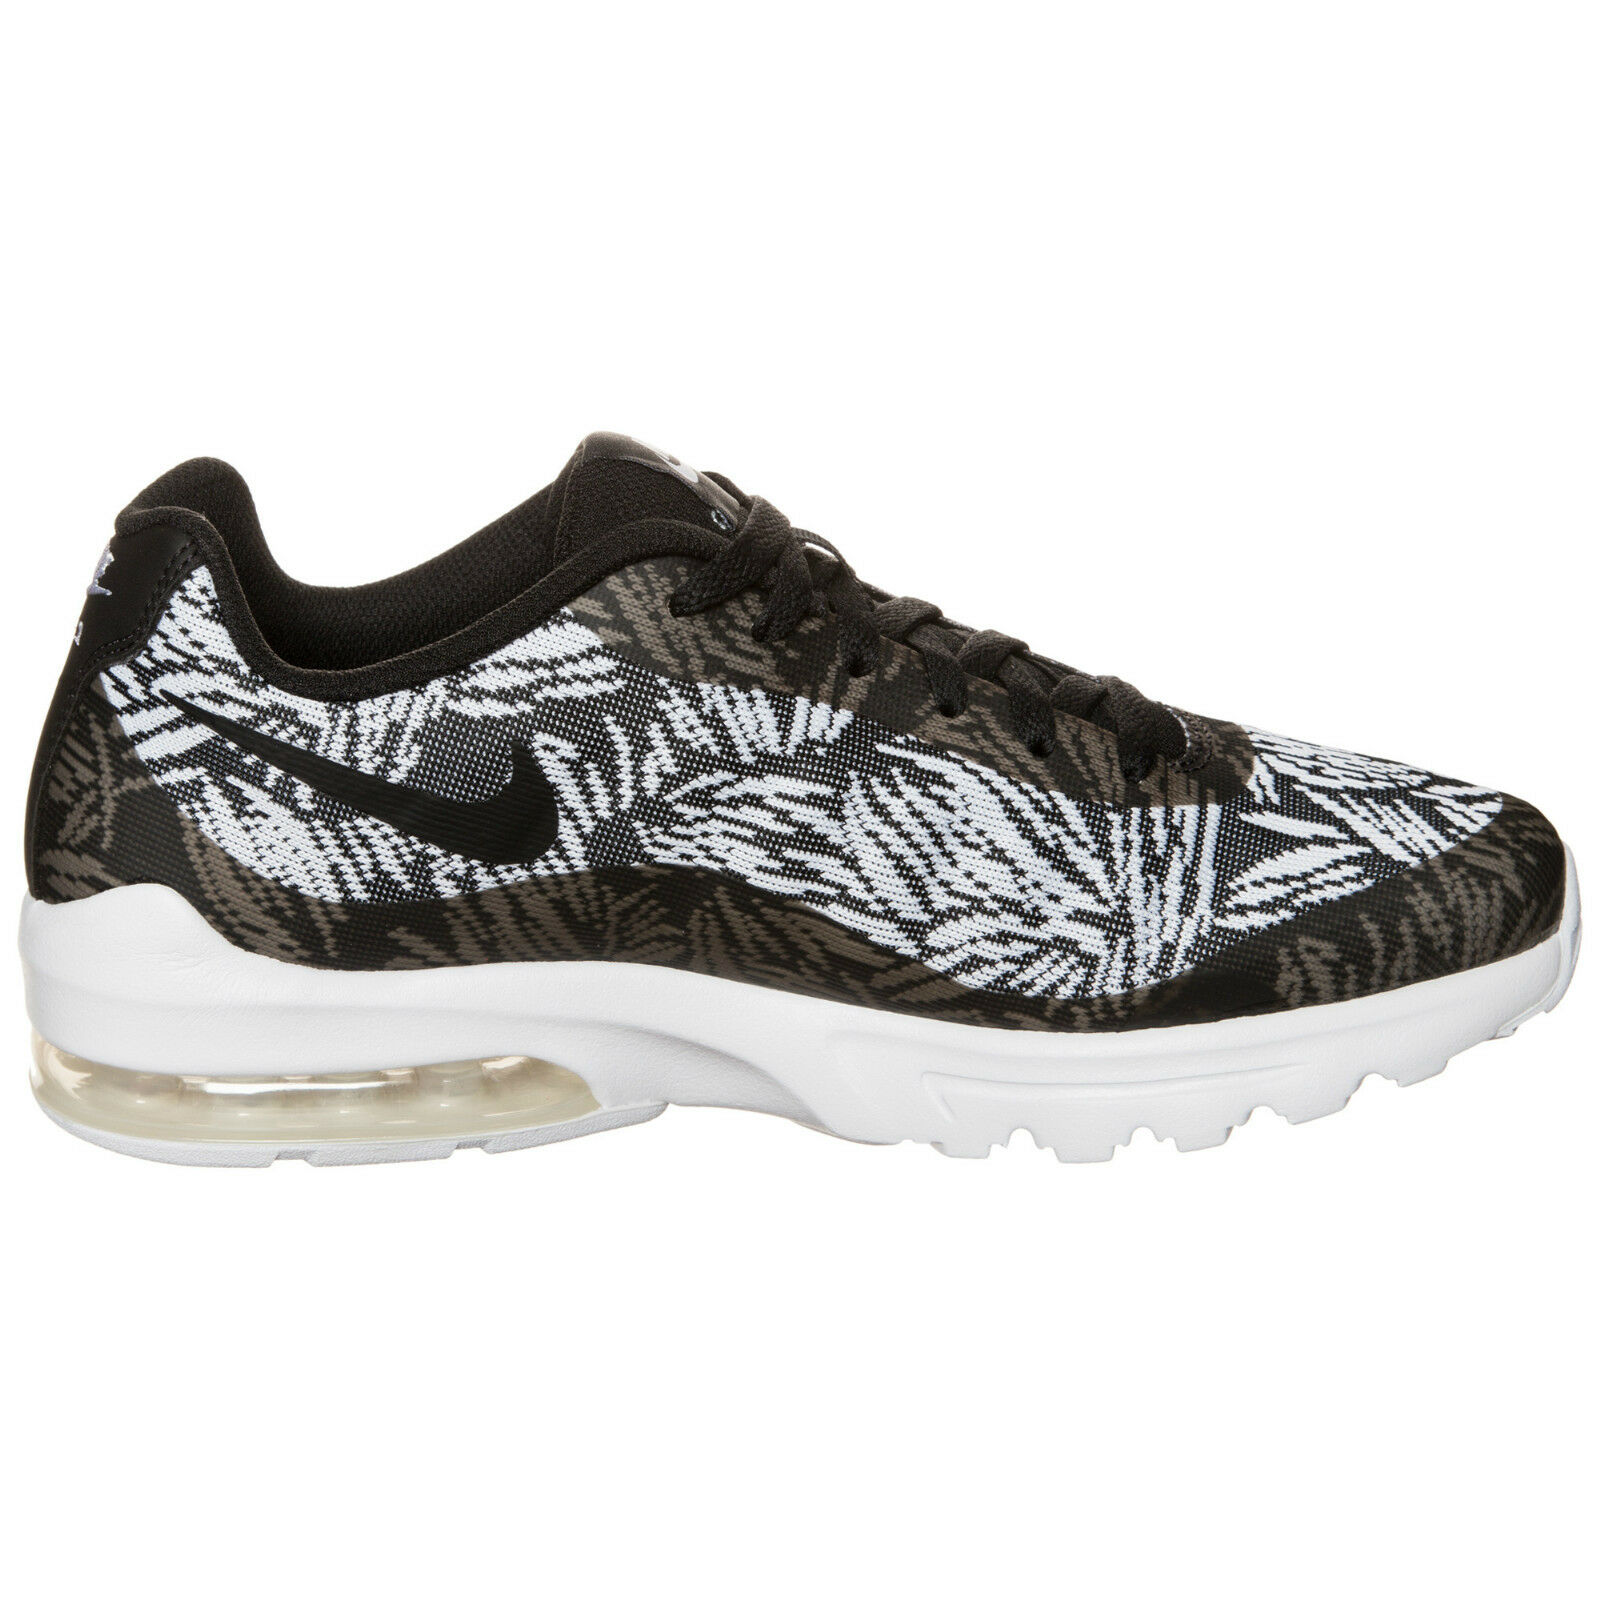 Nike Air Max Invigor Jacquard Trainers New 100% Authentic All Sizes